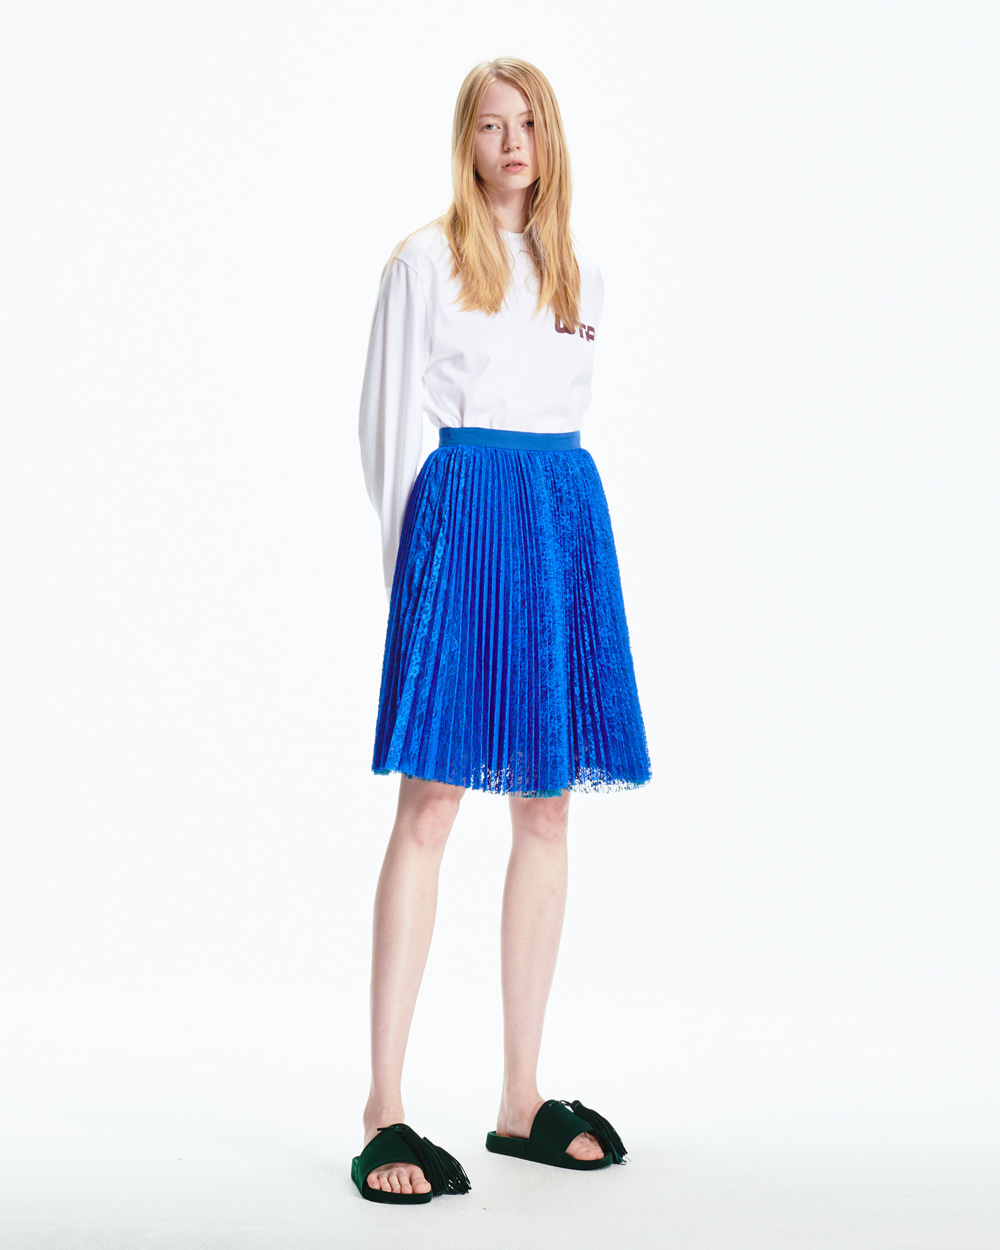 PF20 SHEER LACE PLEATS SKIRT